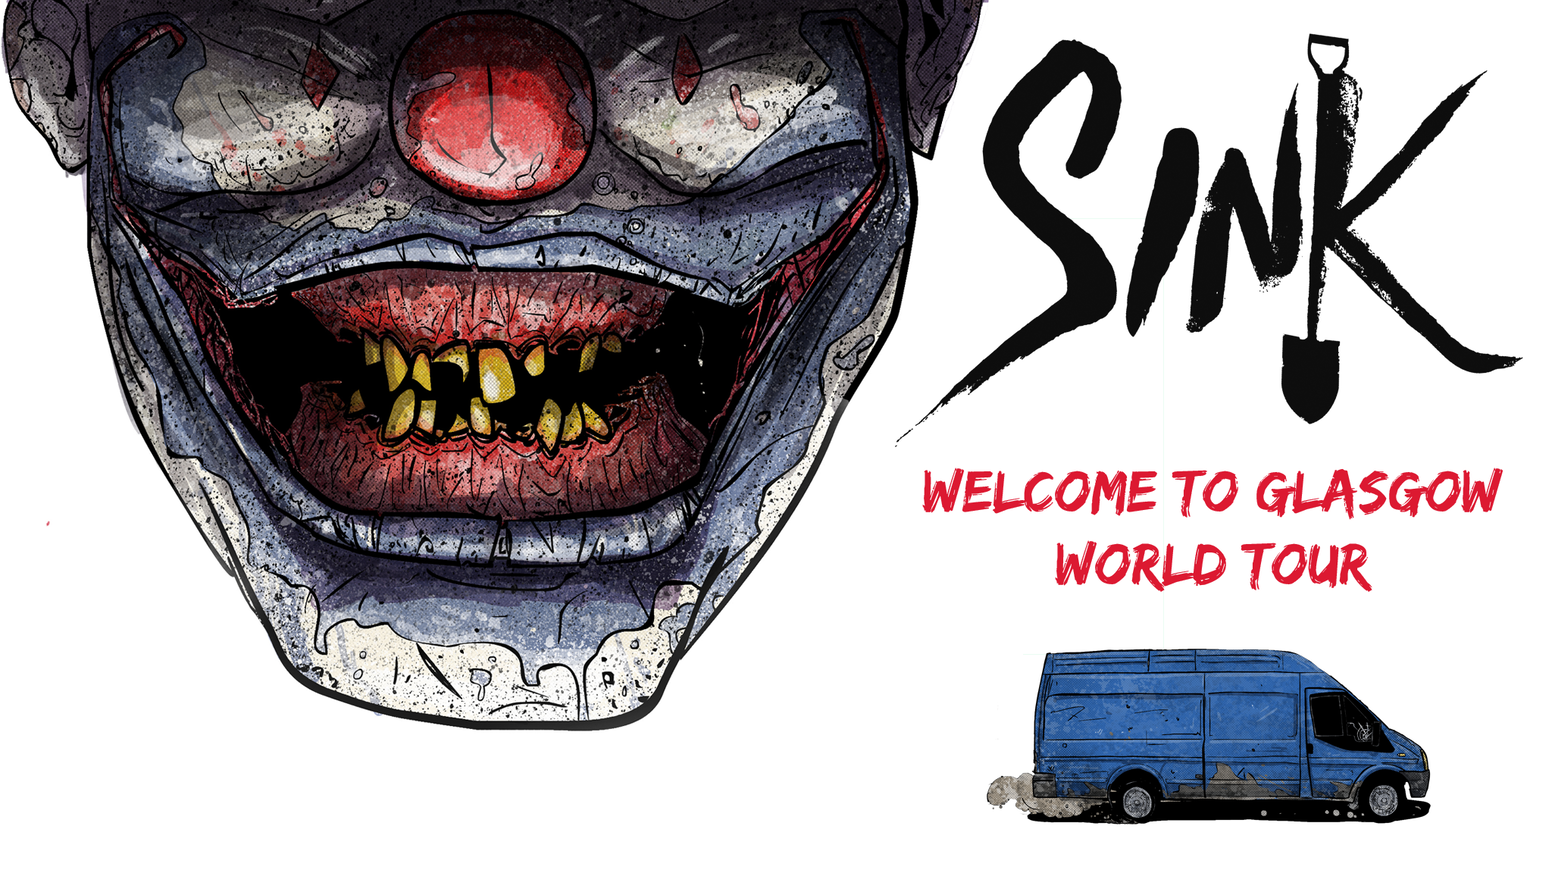 Killer clowns in a blue van, shovel-wielding vigilantes, and the last bus you'd ever want to ride... You must be in Sinkhill.